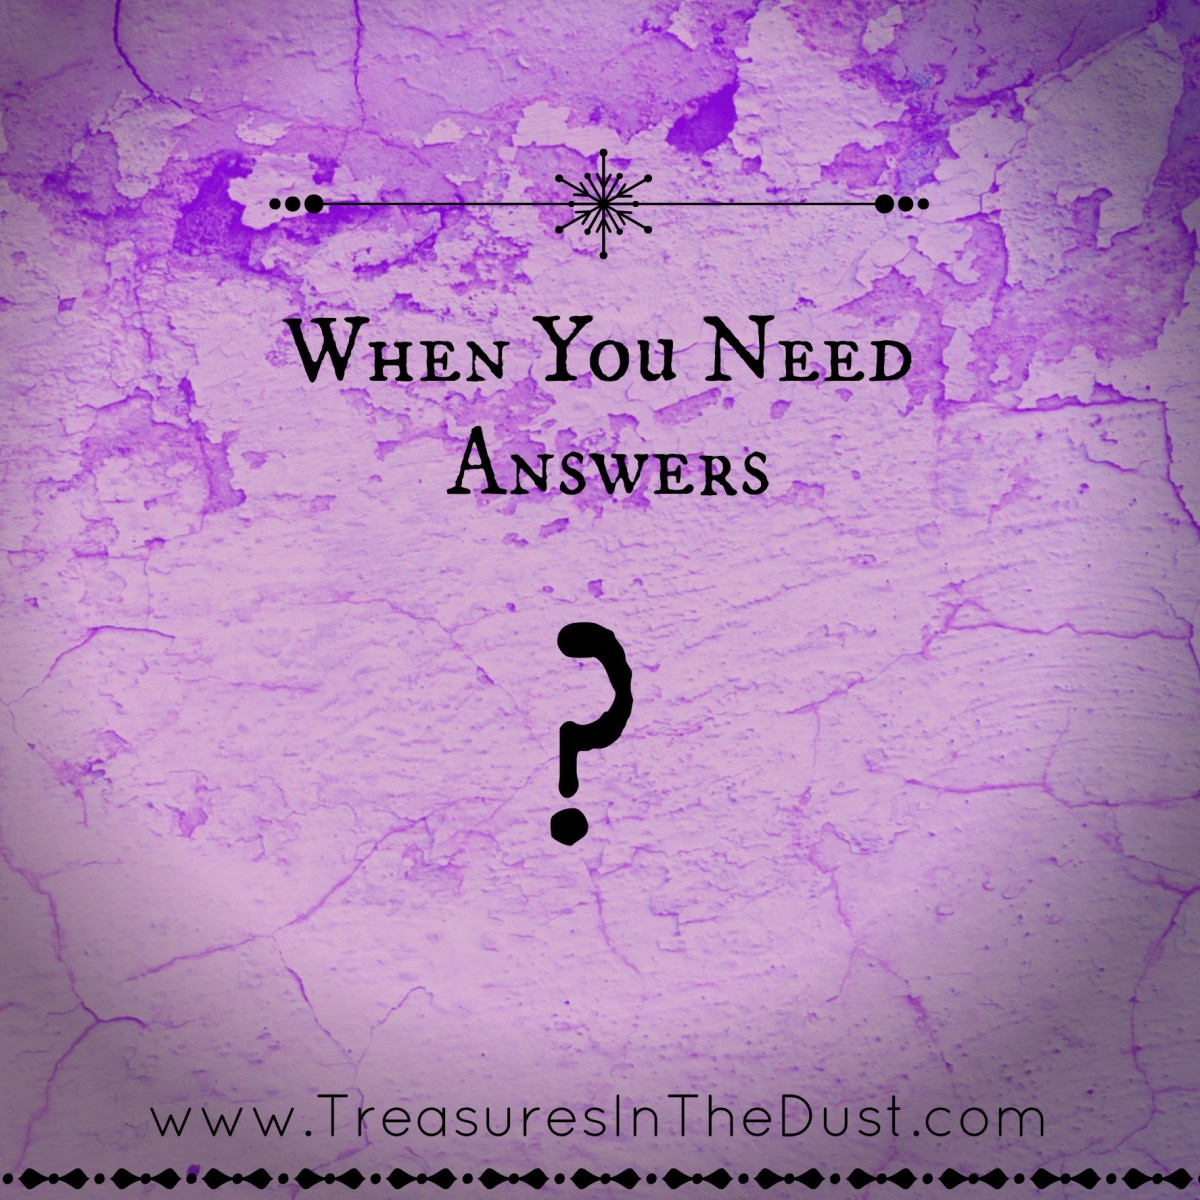 When You Need Answers